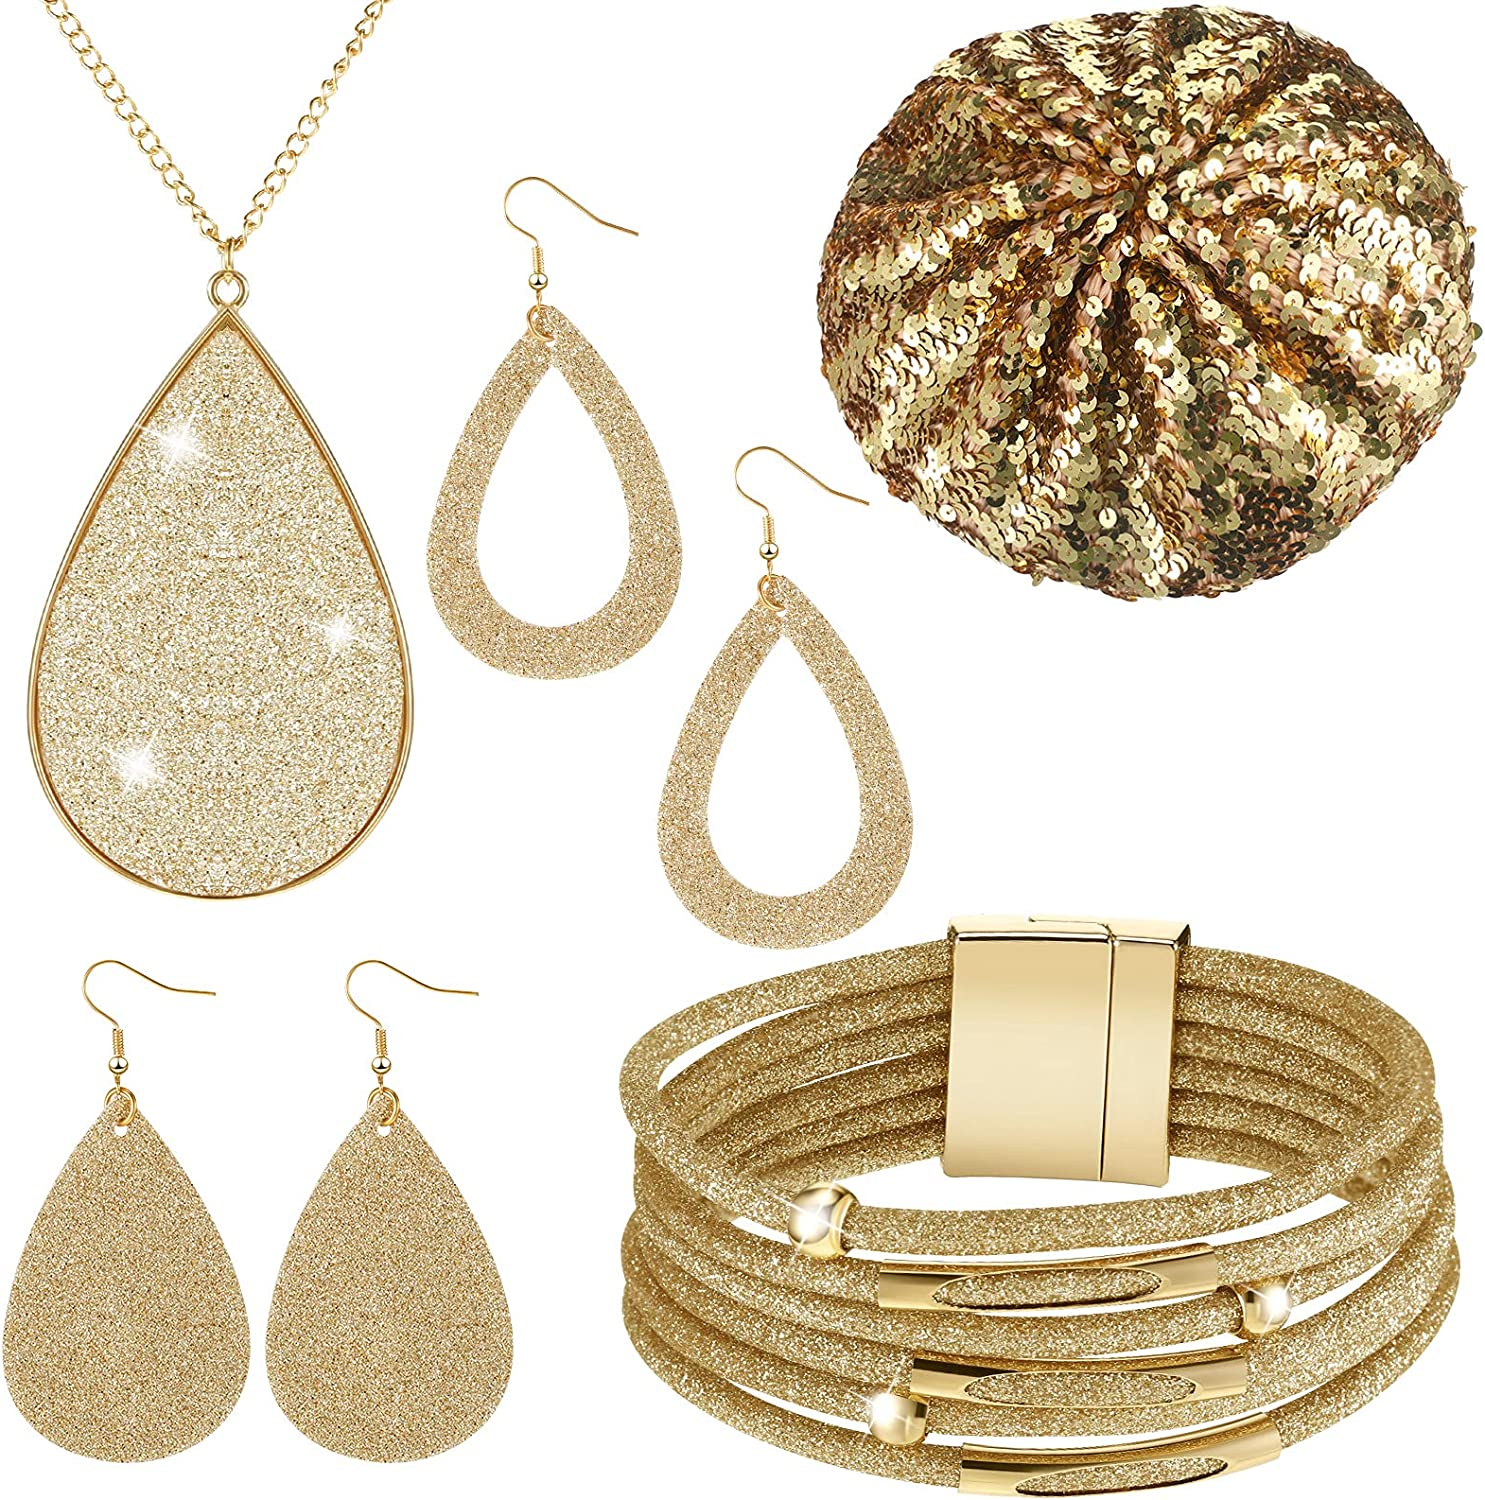 Glitter Sequin Jewelry Set, Include Faux Leather Necklace Bridal Wedding Multi-Layer Bracelet Shiny Sequin Beret with 2 Pairs Exquisite Dangle Earrings for Women